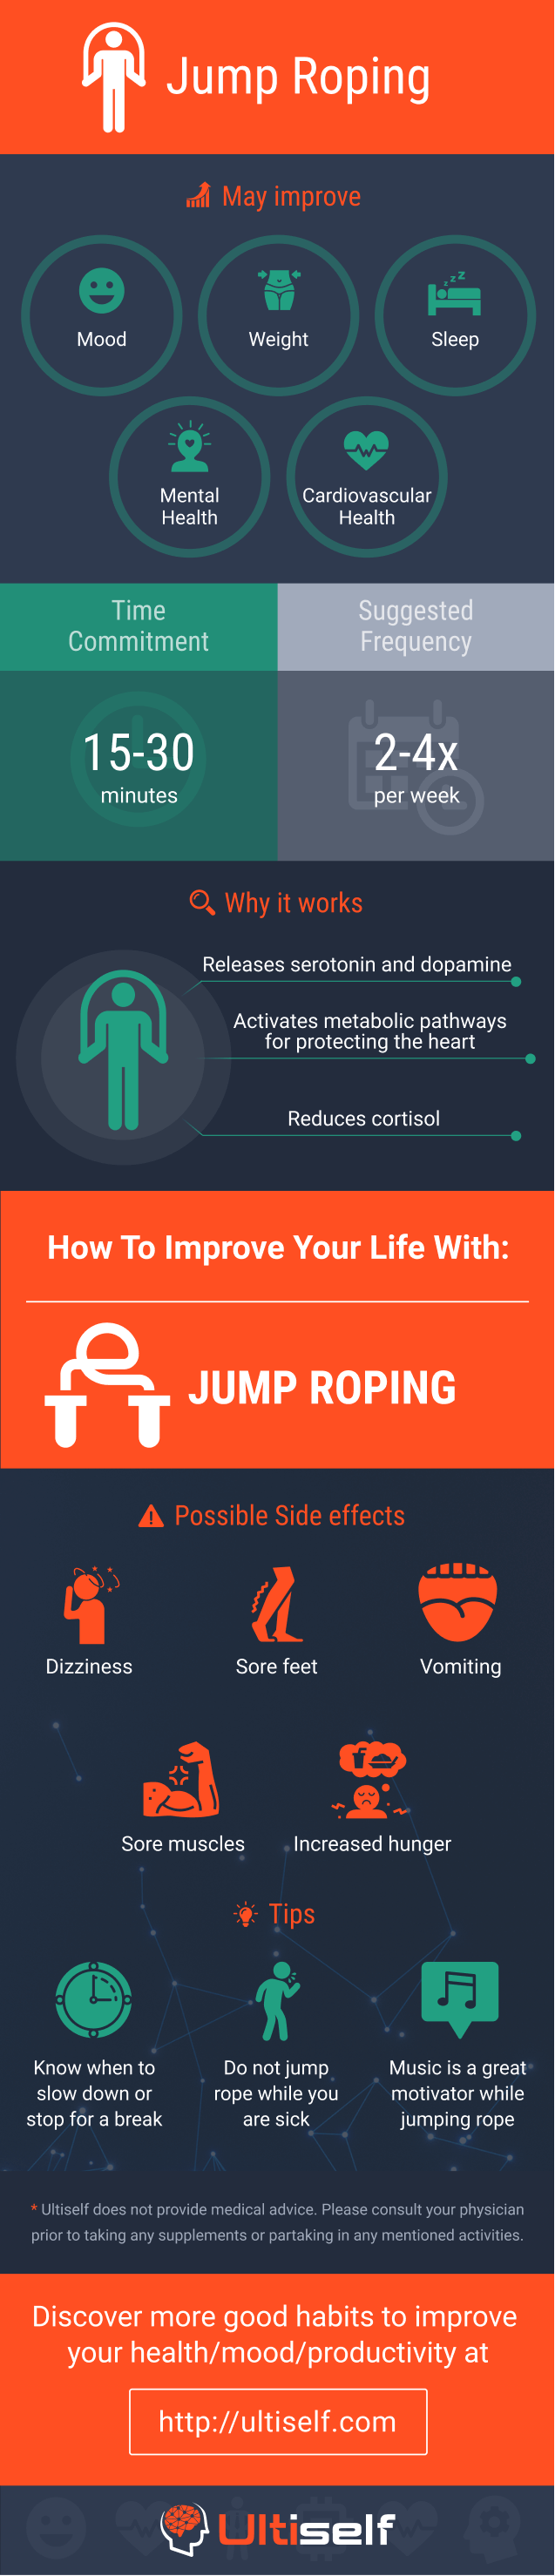 Jumping Rope infographic